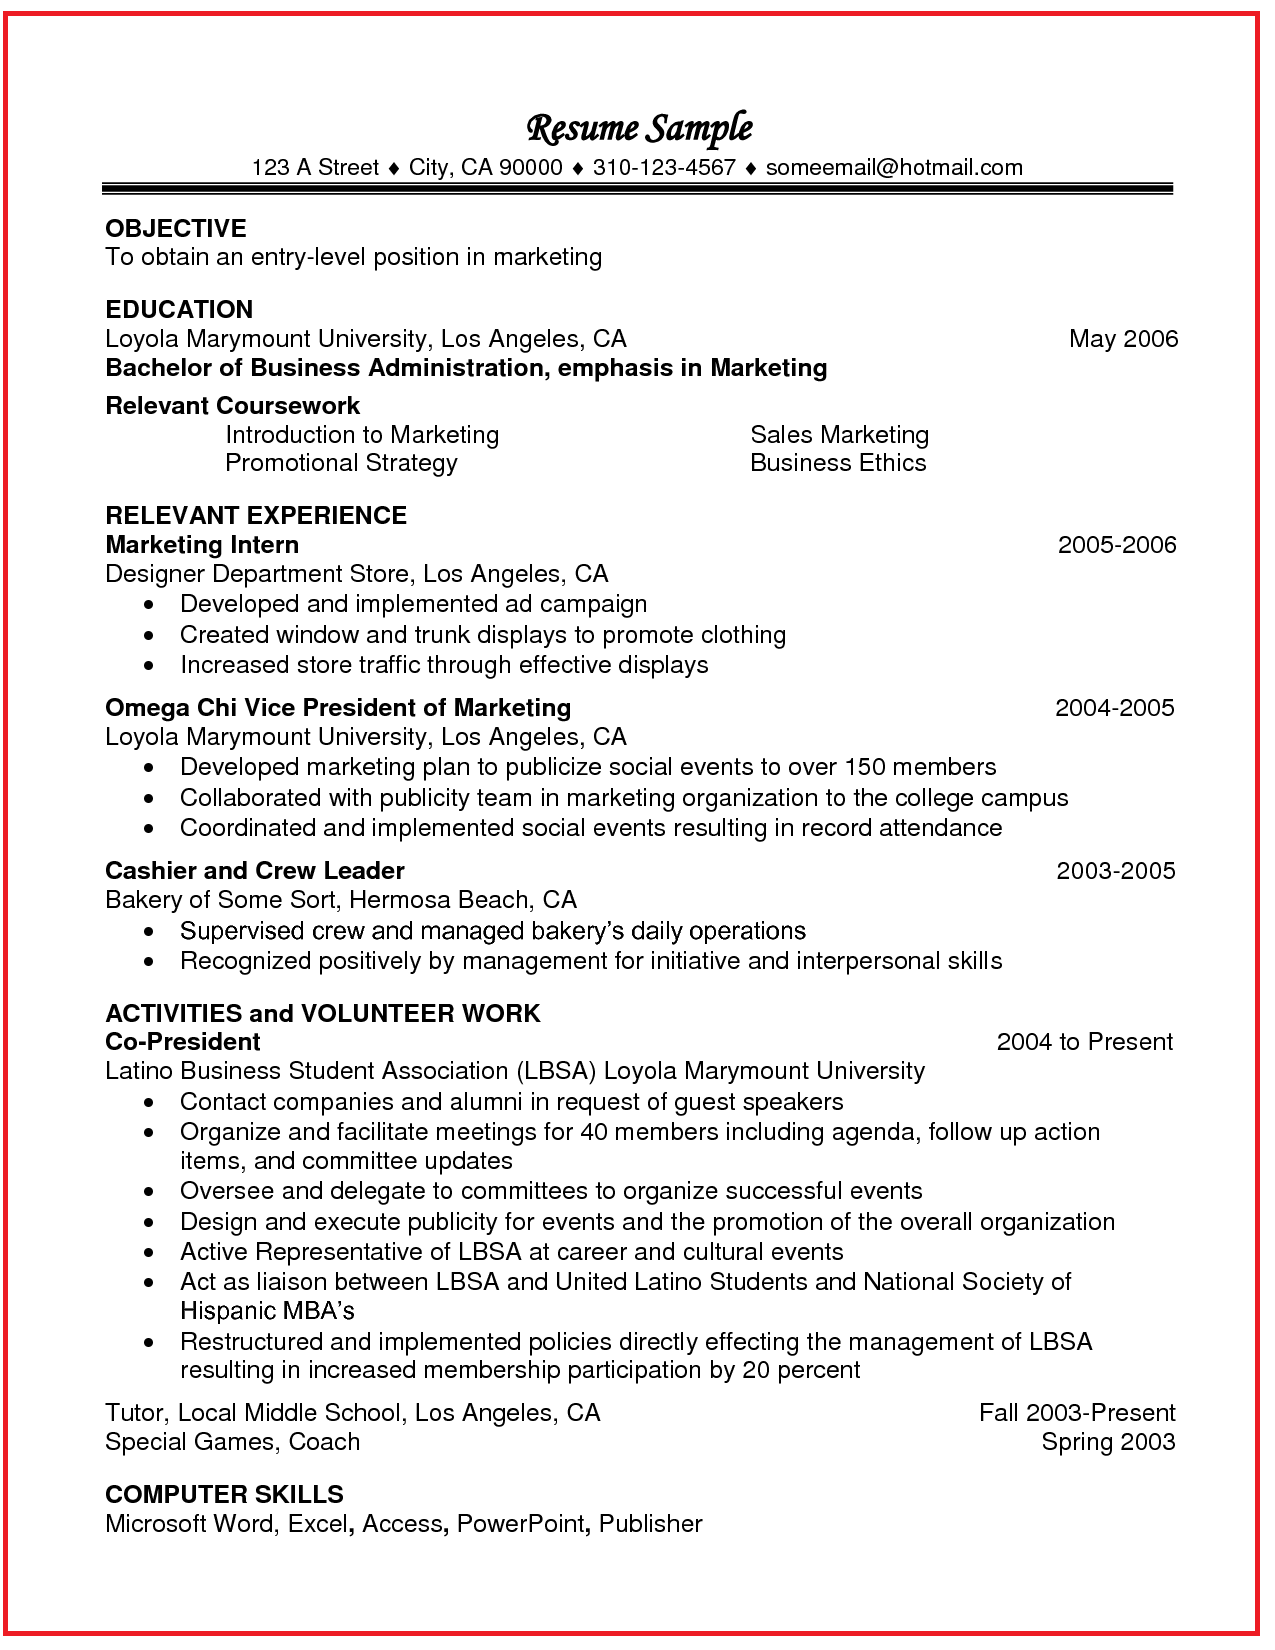 Relevant Coursework In Resume Example - http://www.jobresume.website ...